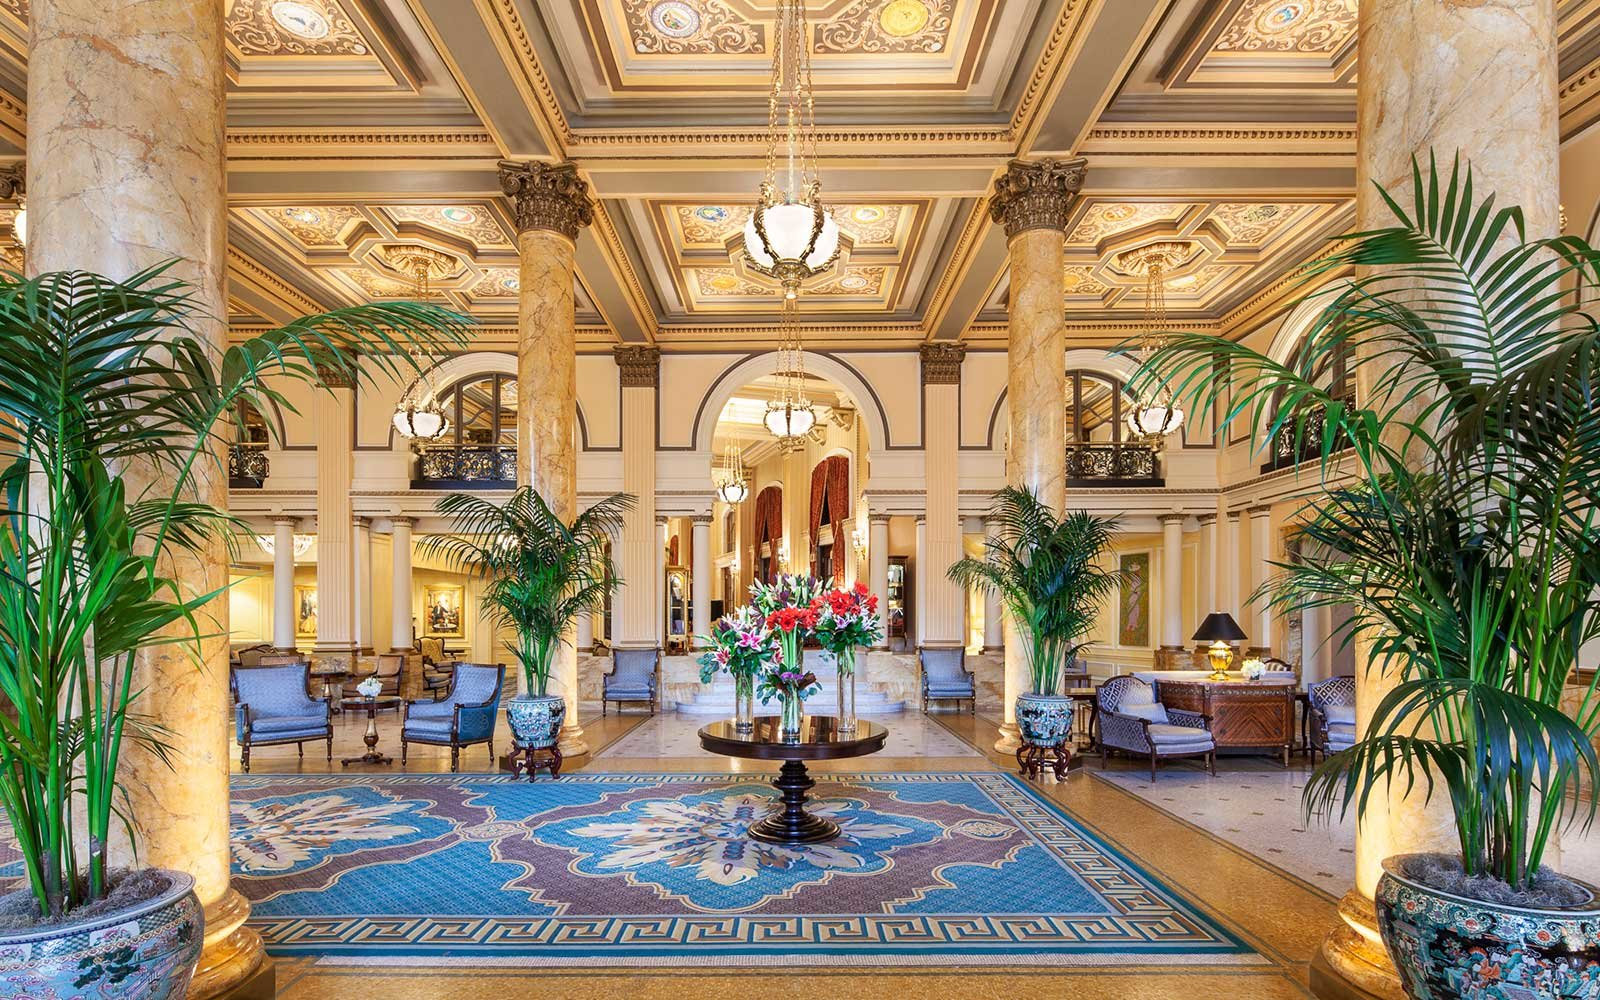 Willard Intercontinental Hotel in Washington DC